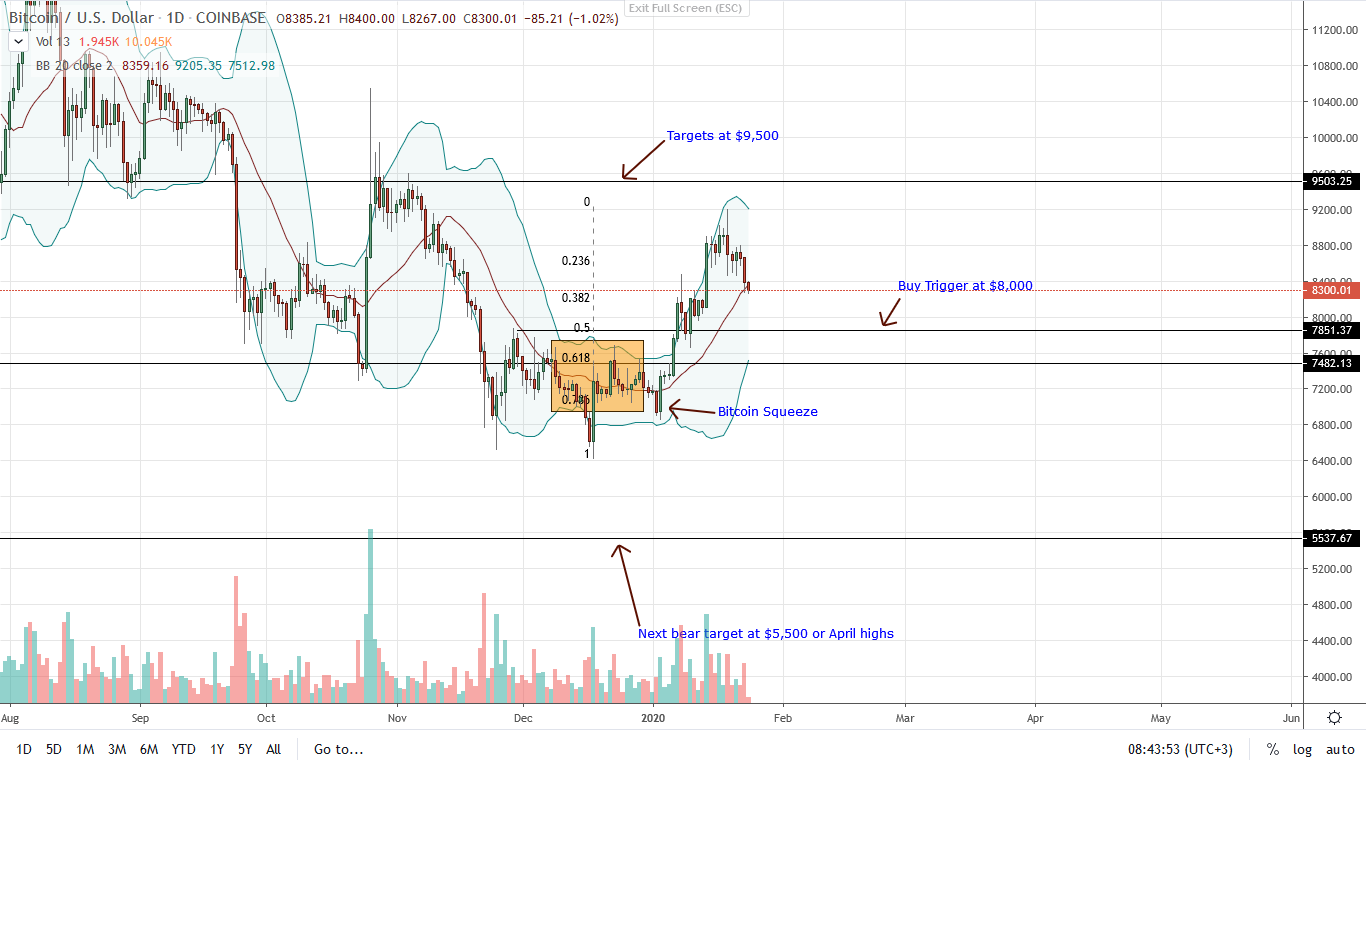 Bitcoin [BTC] Price Analysis: Bitcoin Prices Cool off, Retesting the 20-day MA, but is $7,500 on the Table?